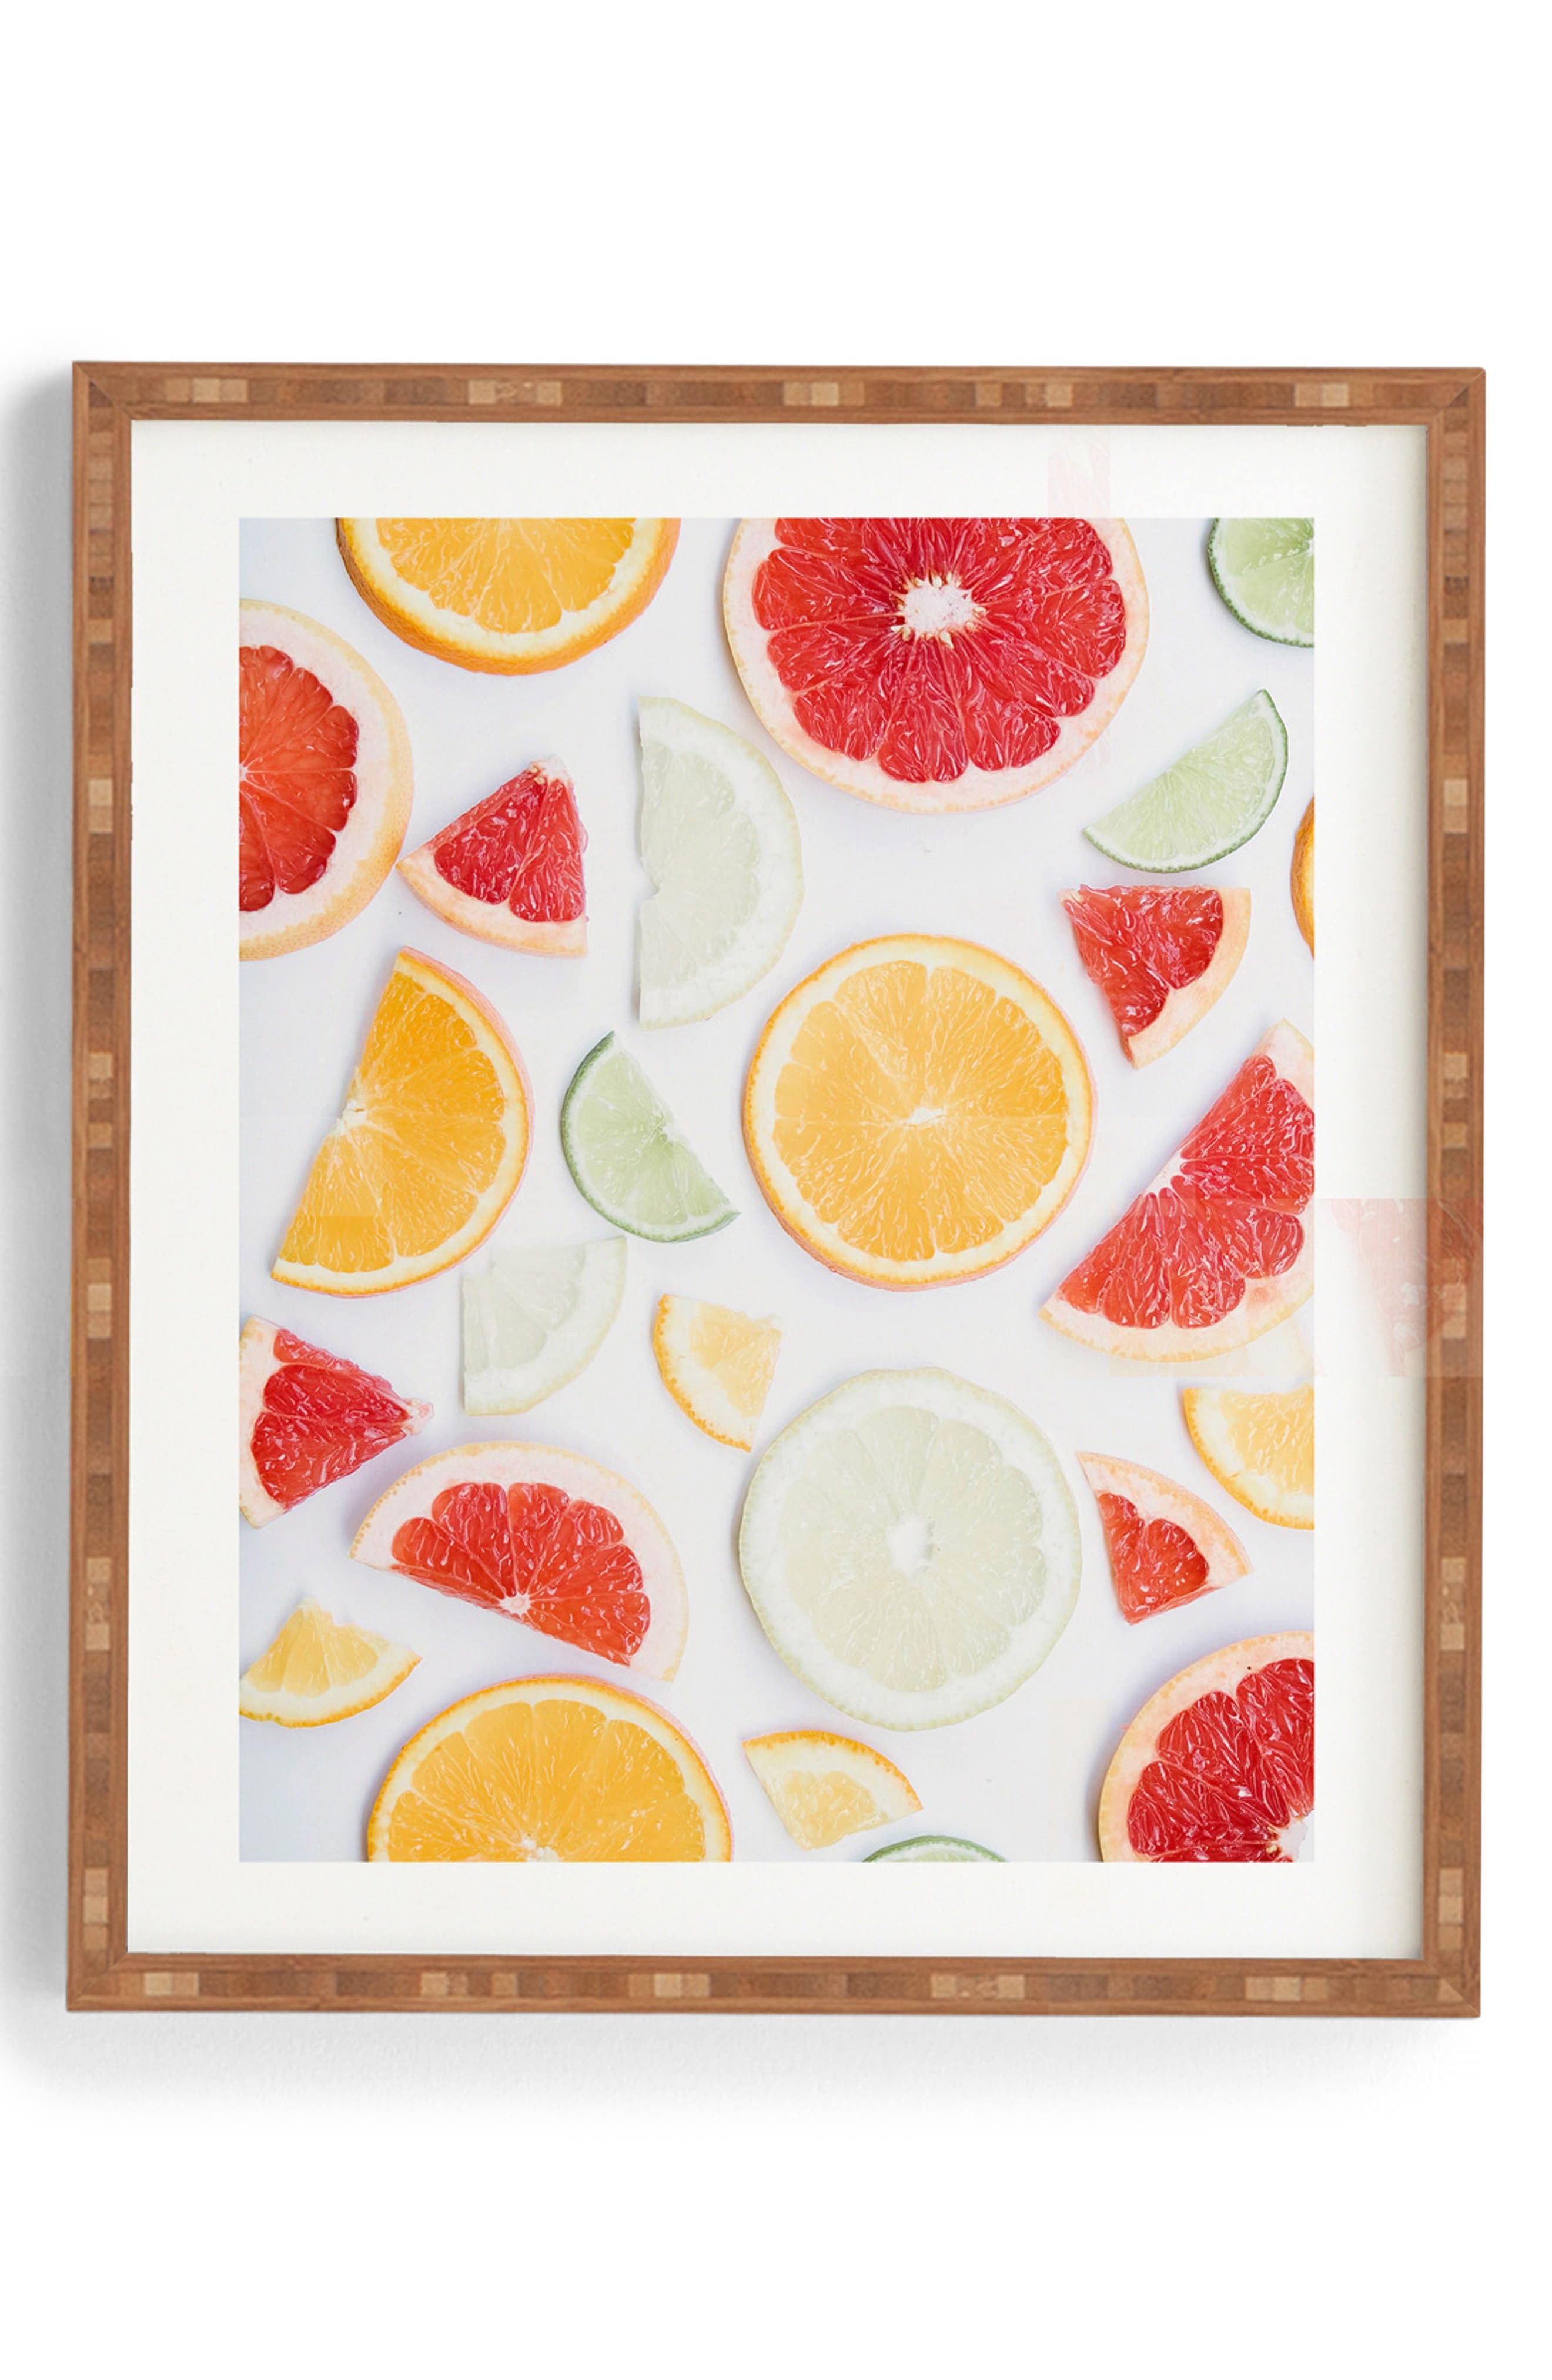 Juicy citrus slices captured by artist Ingrid Beddoes take center stage on ready-to-hang wall art featuring a satin finish and a rustic bamboo frame. Style Name: Deny Designs Citrus Fresh Framed Wall Art. Style Number: 5636429. Available in stores.